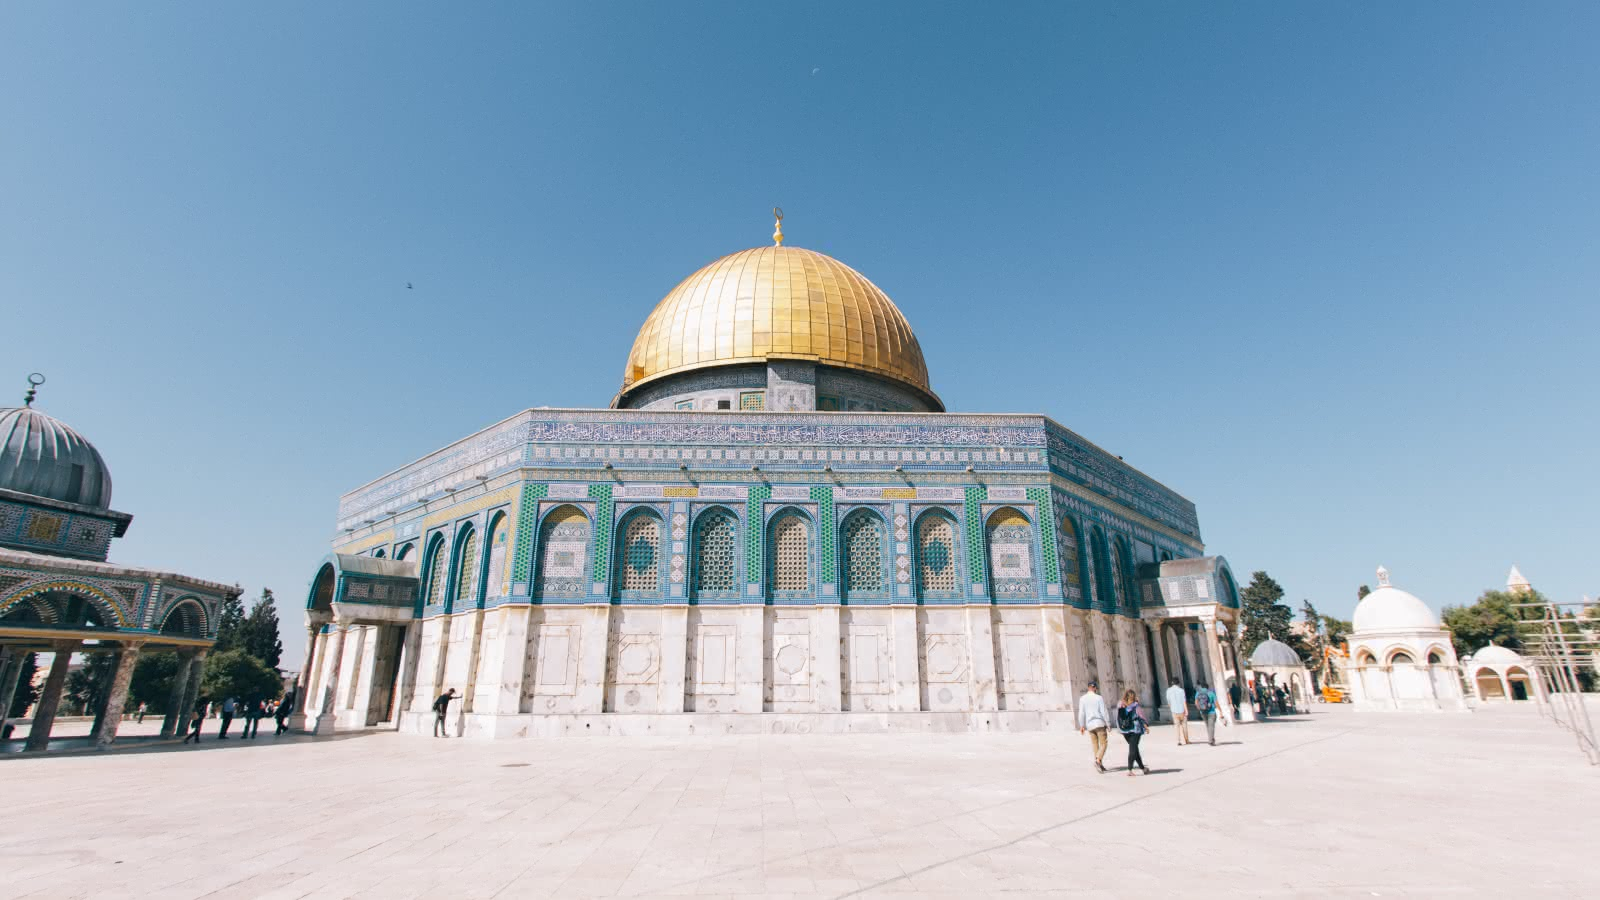 The Dome of the Rock in Jerusalem visited during the SANDEMANs Holy City Tour